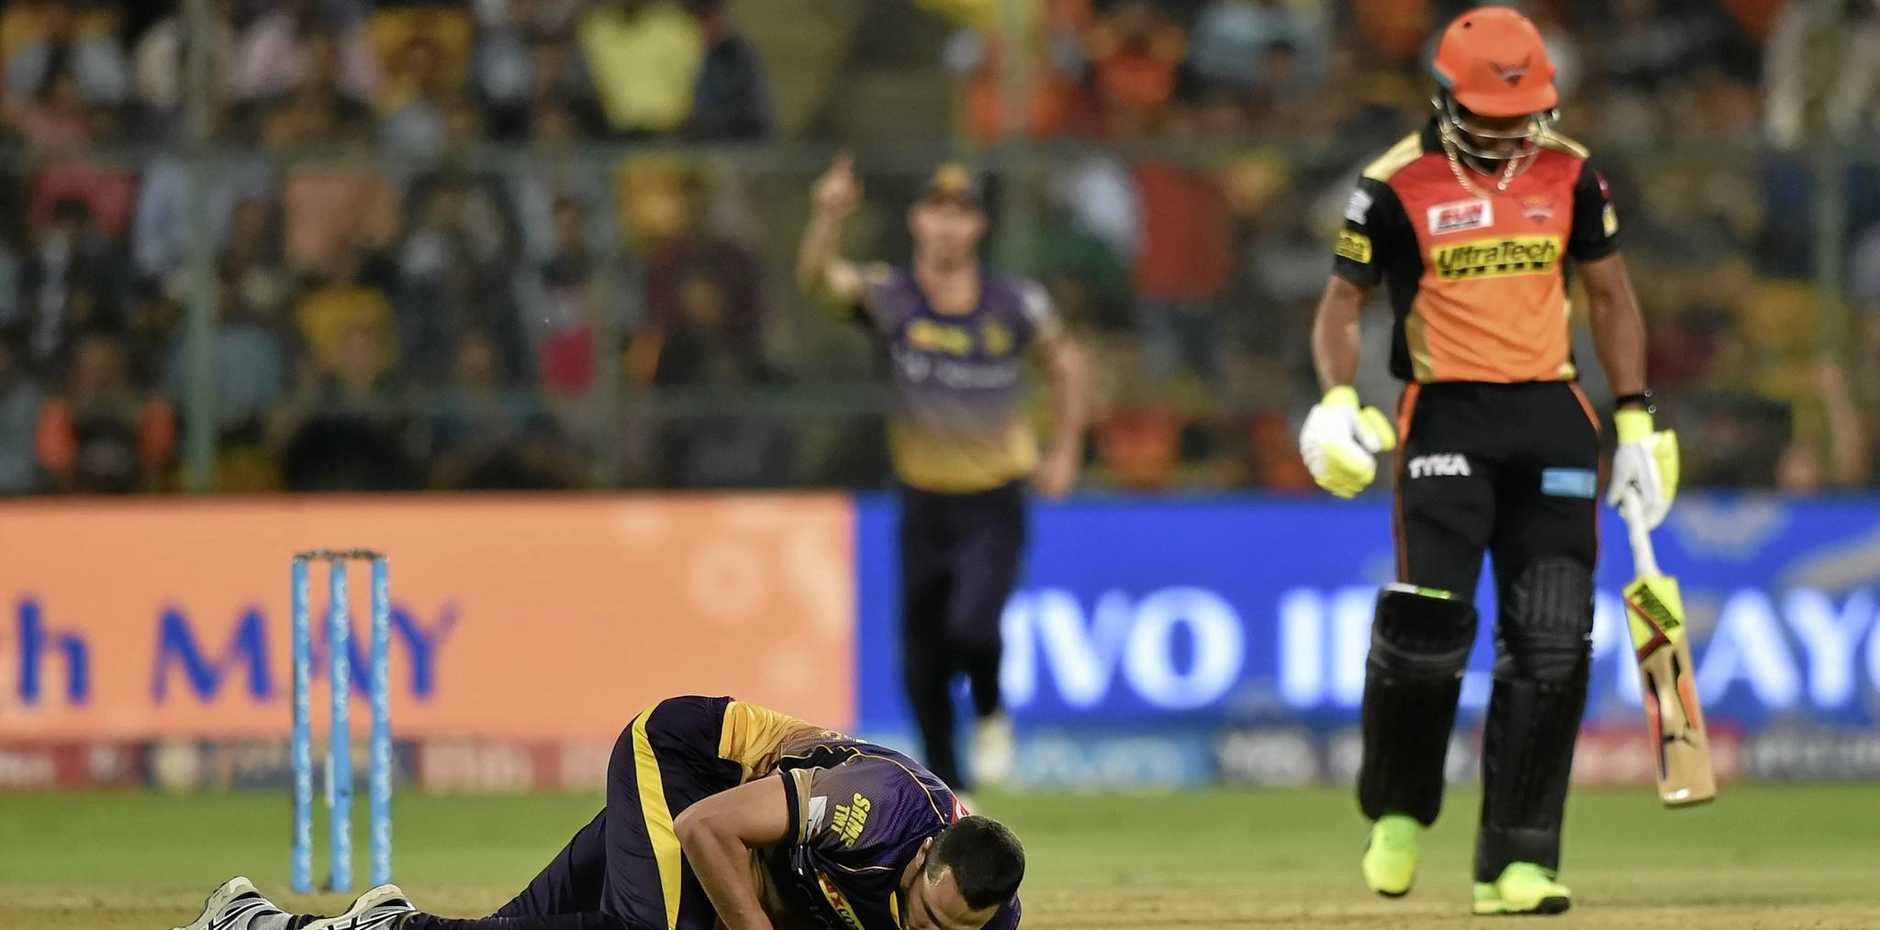 HOWZAT: Kolkata Knight Riders' Nathan Coulter-Nile after taking a stunning return catch from Chris Jordan.